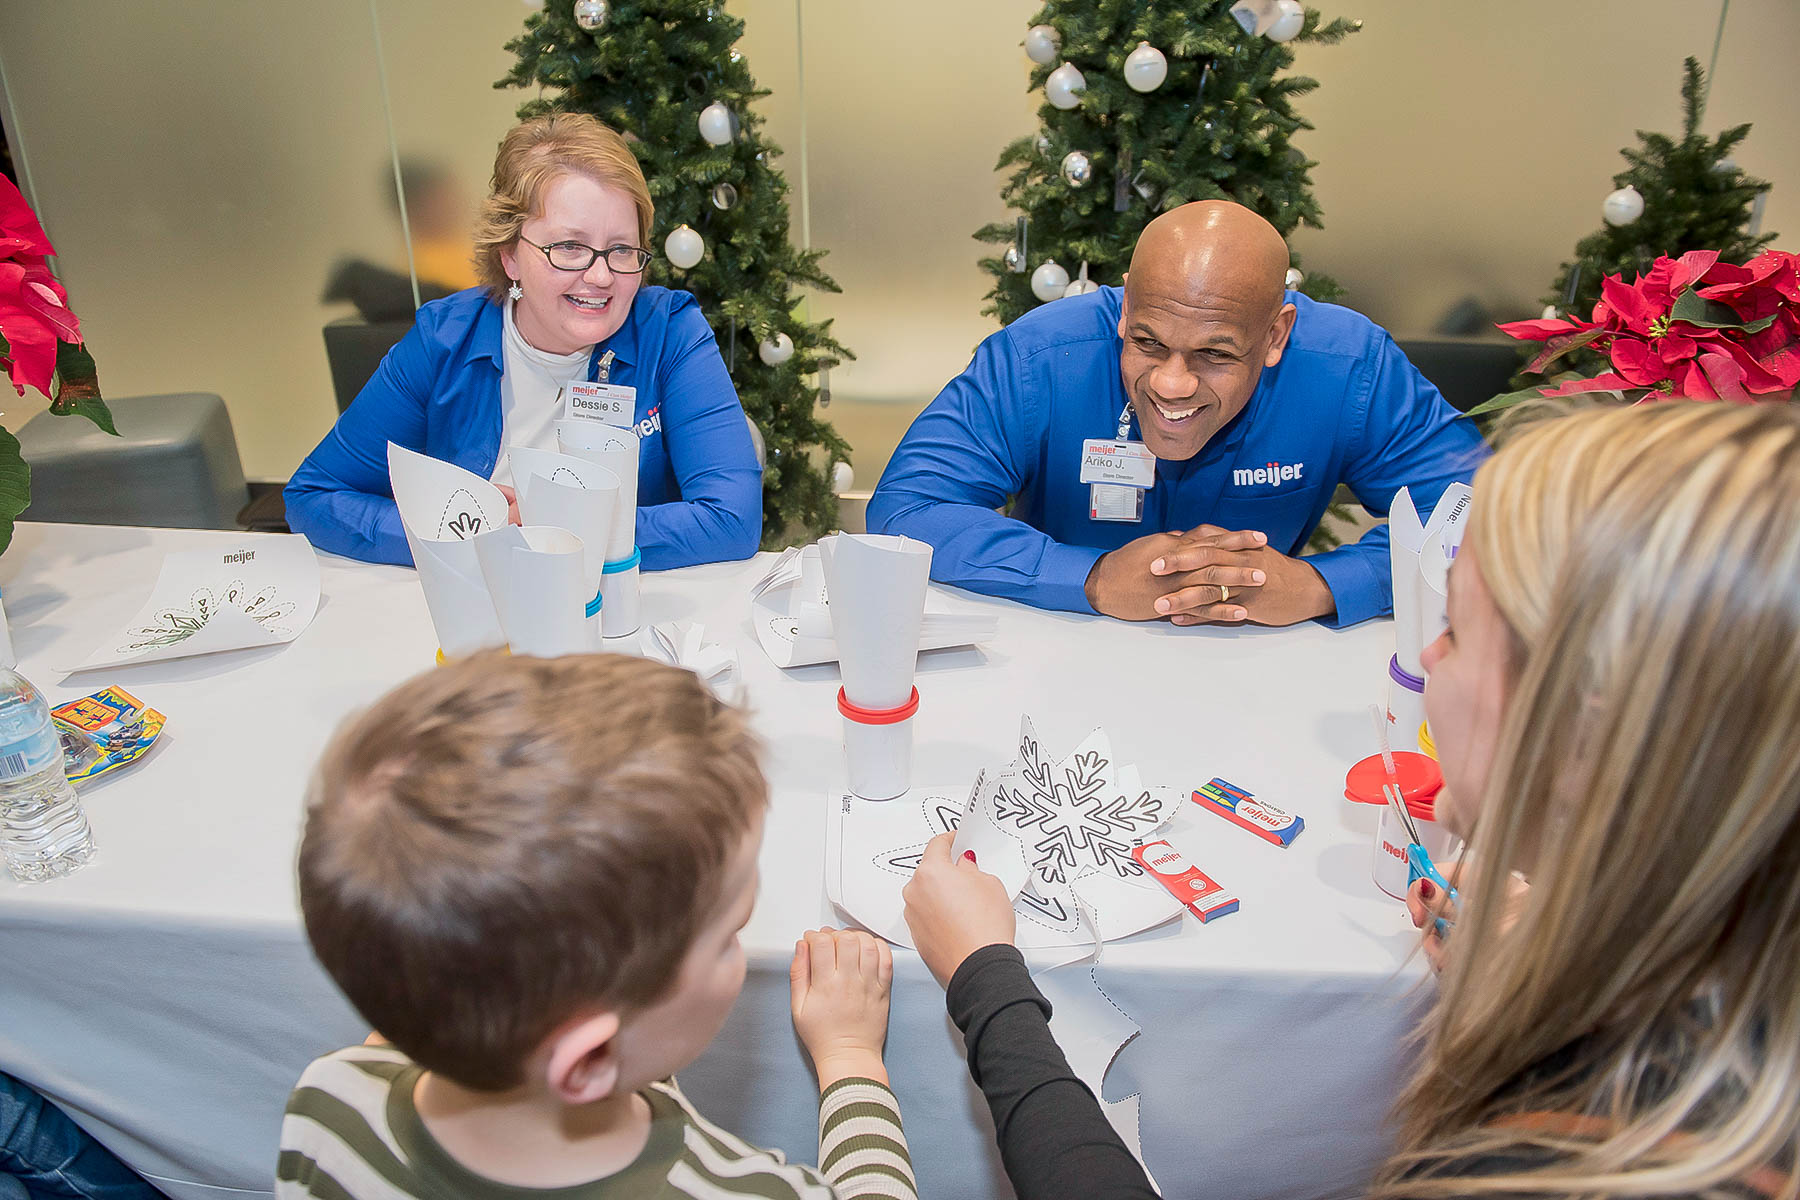 Meijer Spreads Holiday Cheer To Children At Cleveland Hospitals The Villager Newspaper Online